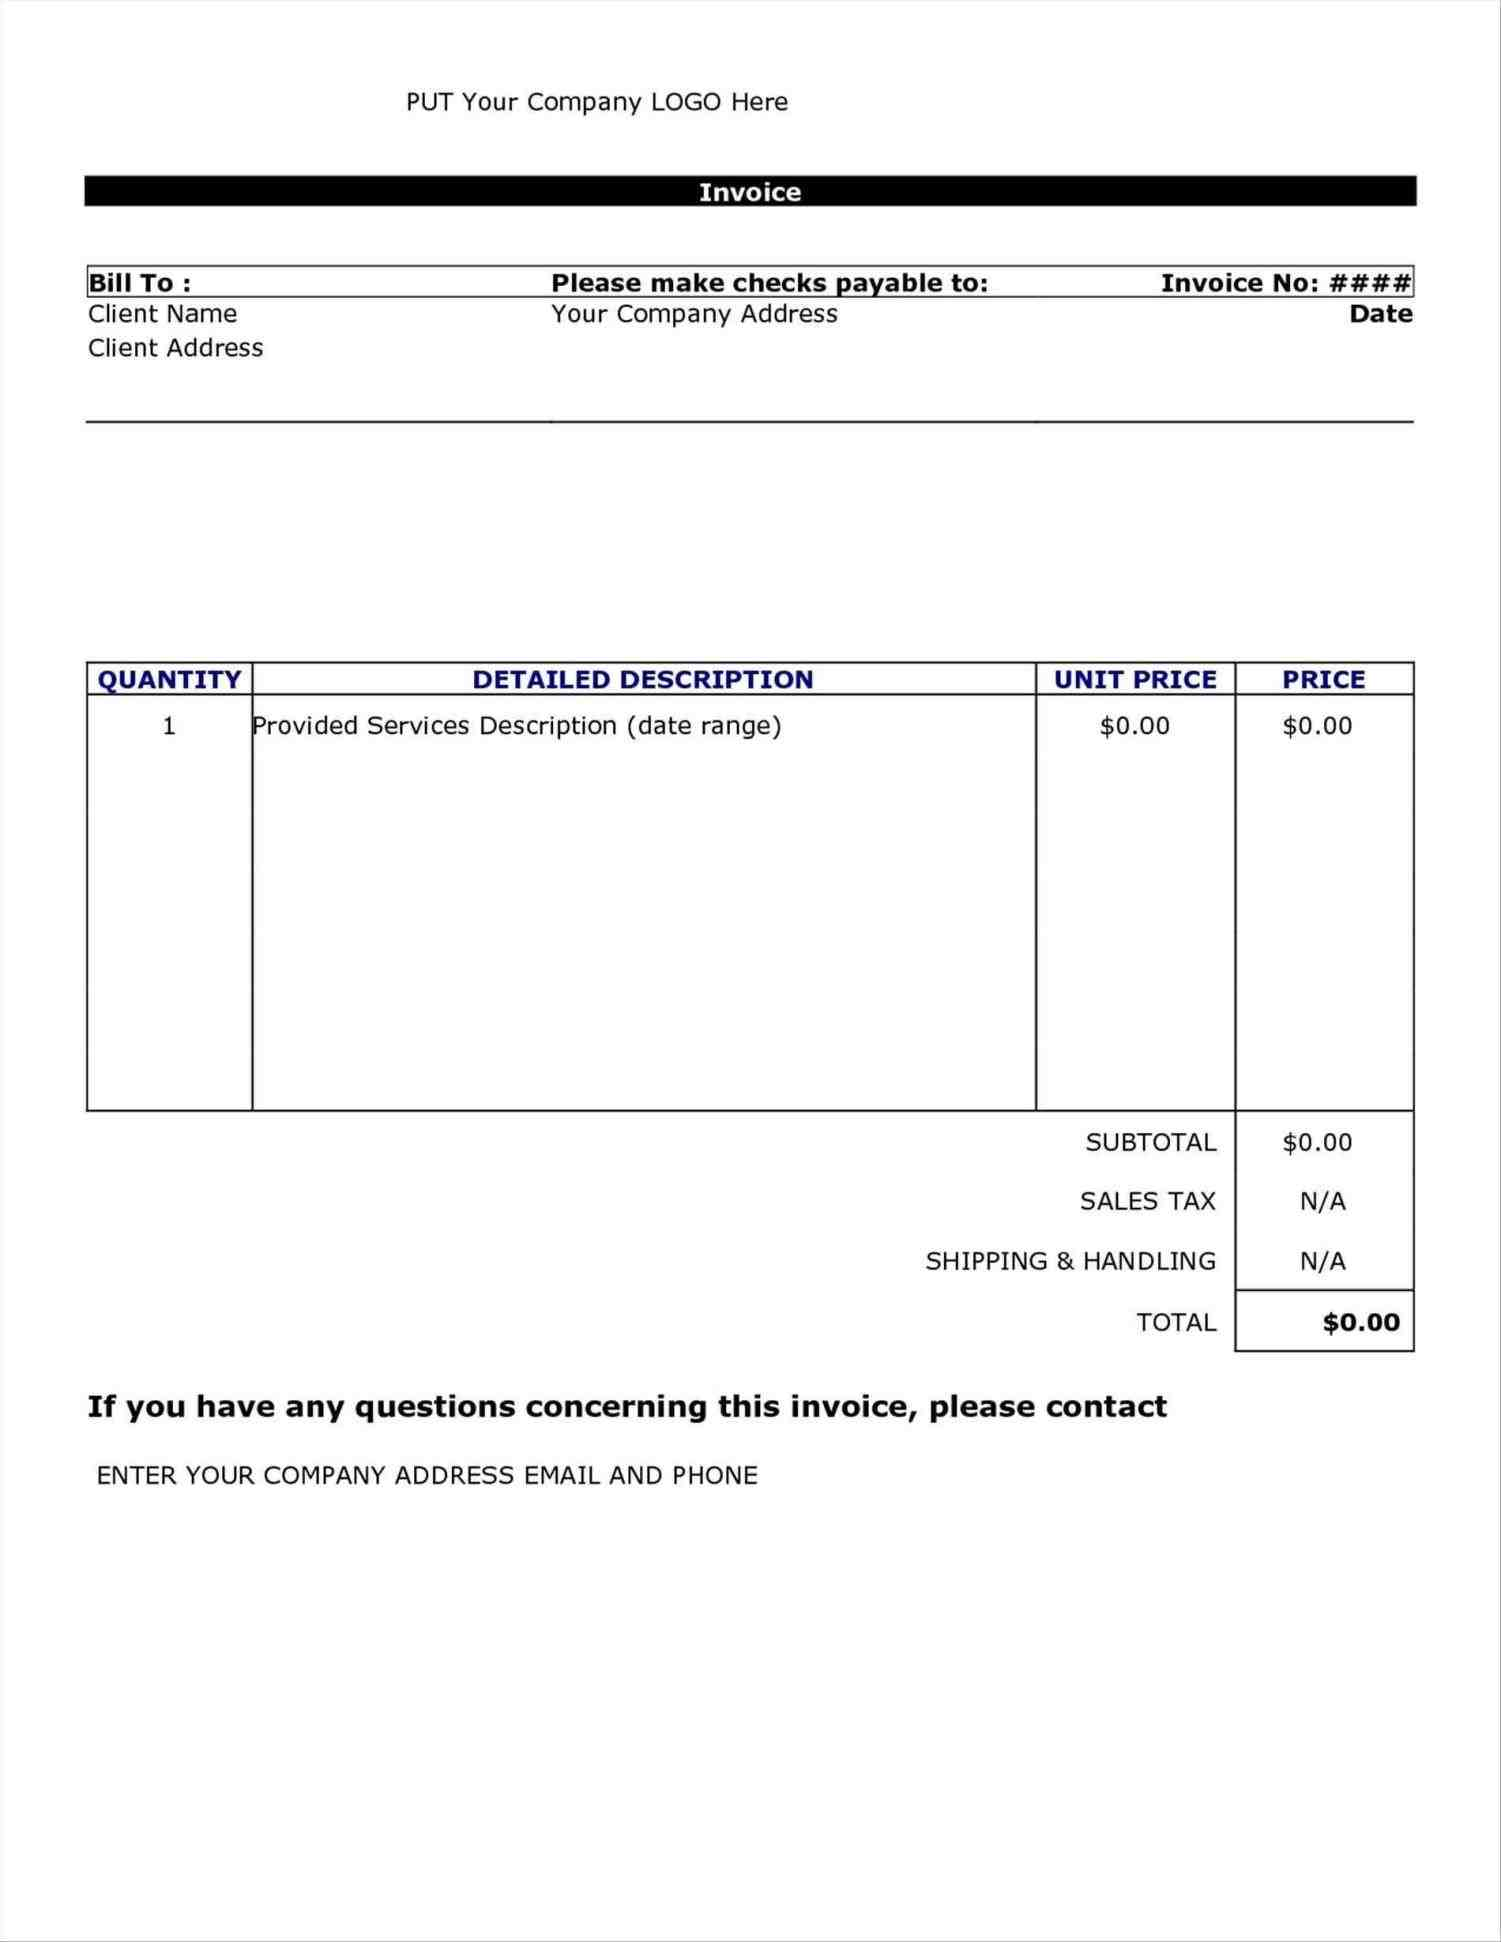 template income statement down down Advance Payment Invoice payment invoice template collection of solutions cash receipt selimtd for your collection